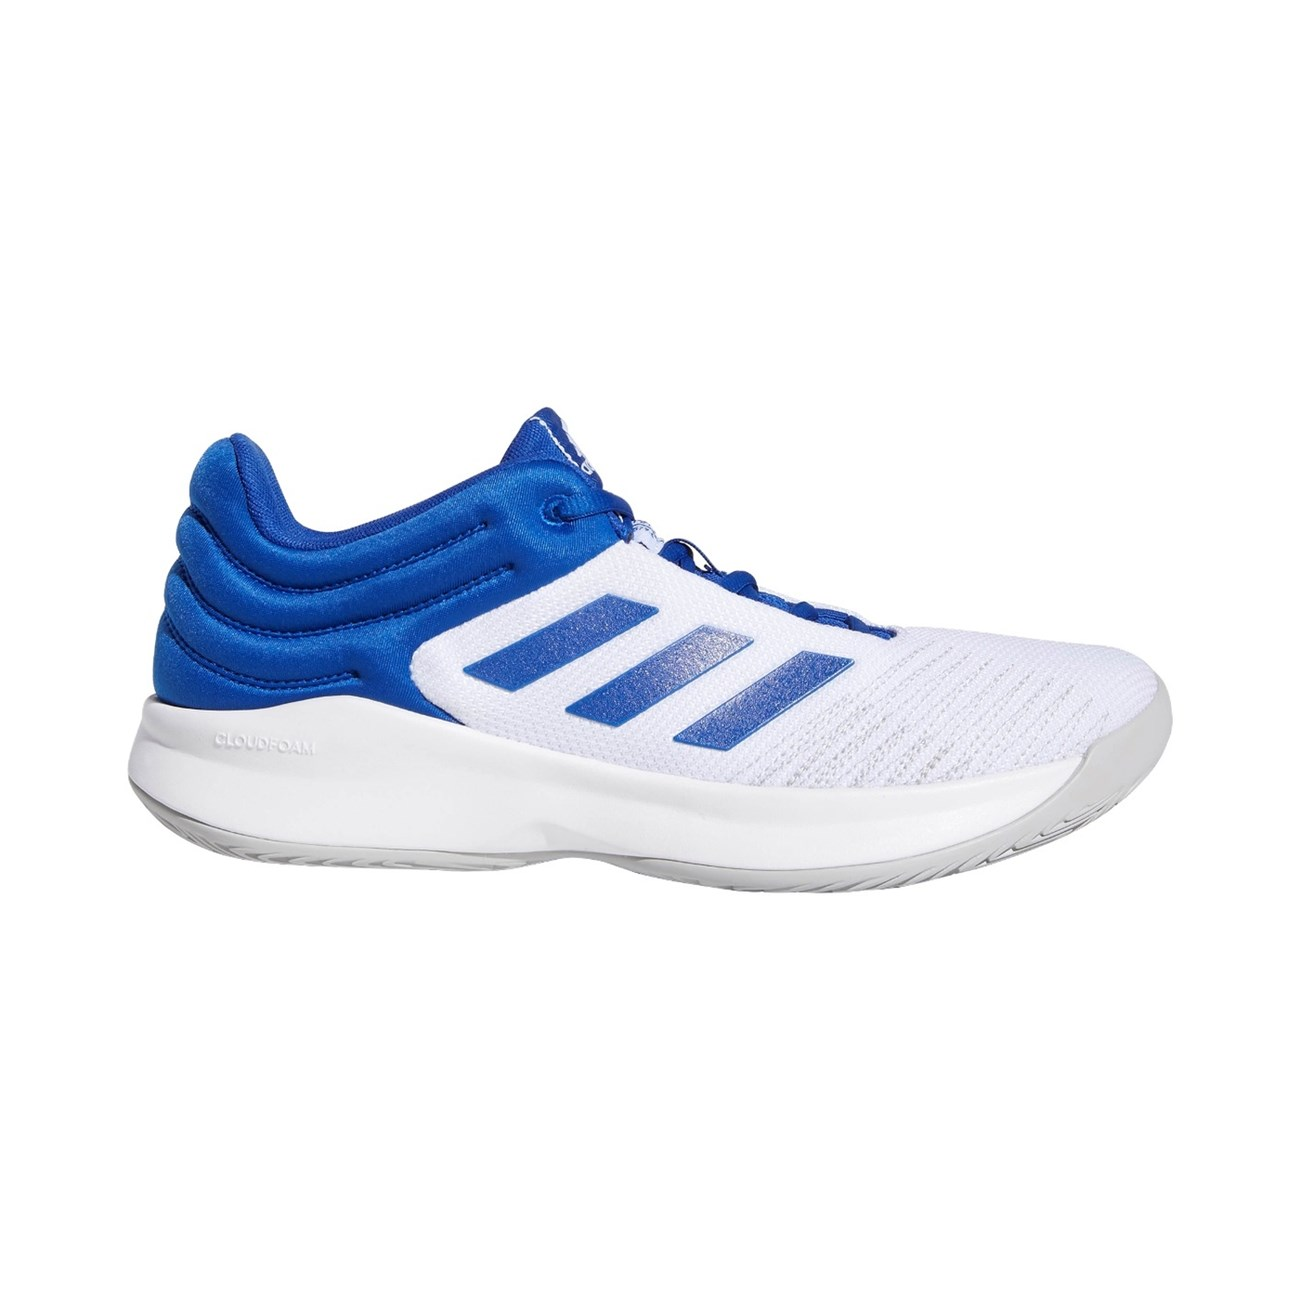 de6fb7a3811 ADIDAS PRO SPARK 2018 LOW < Παπούτσια Μπάσκετ | INTERSPORT